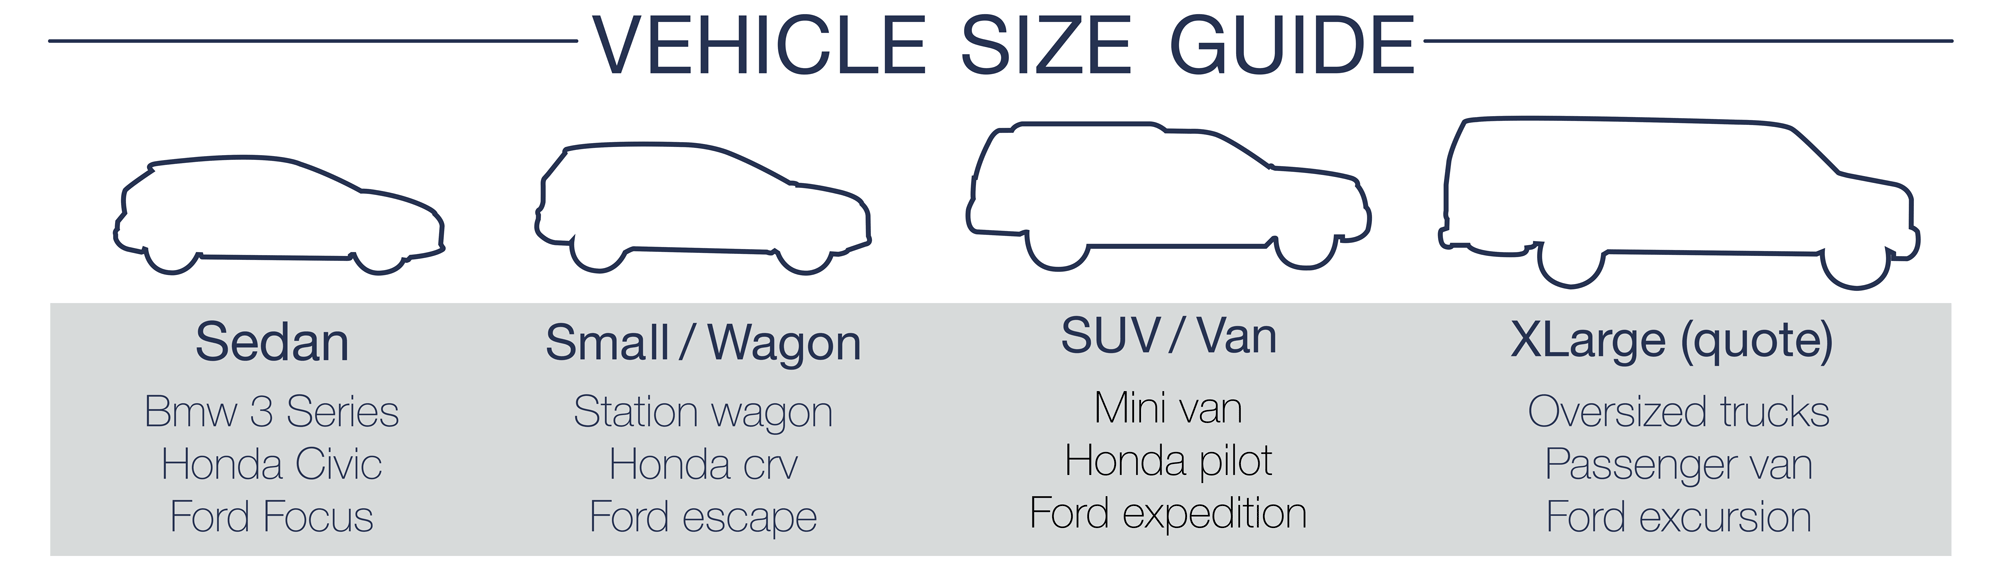 Vehicle Size Guide Eco Car Cafe